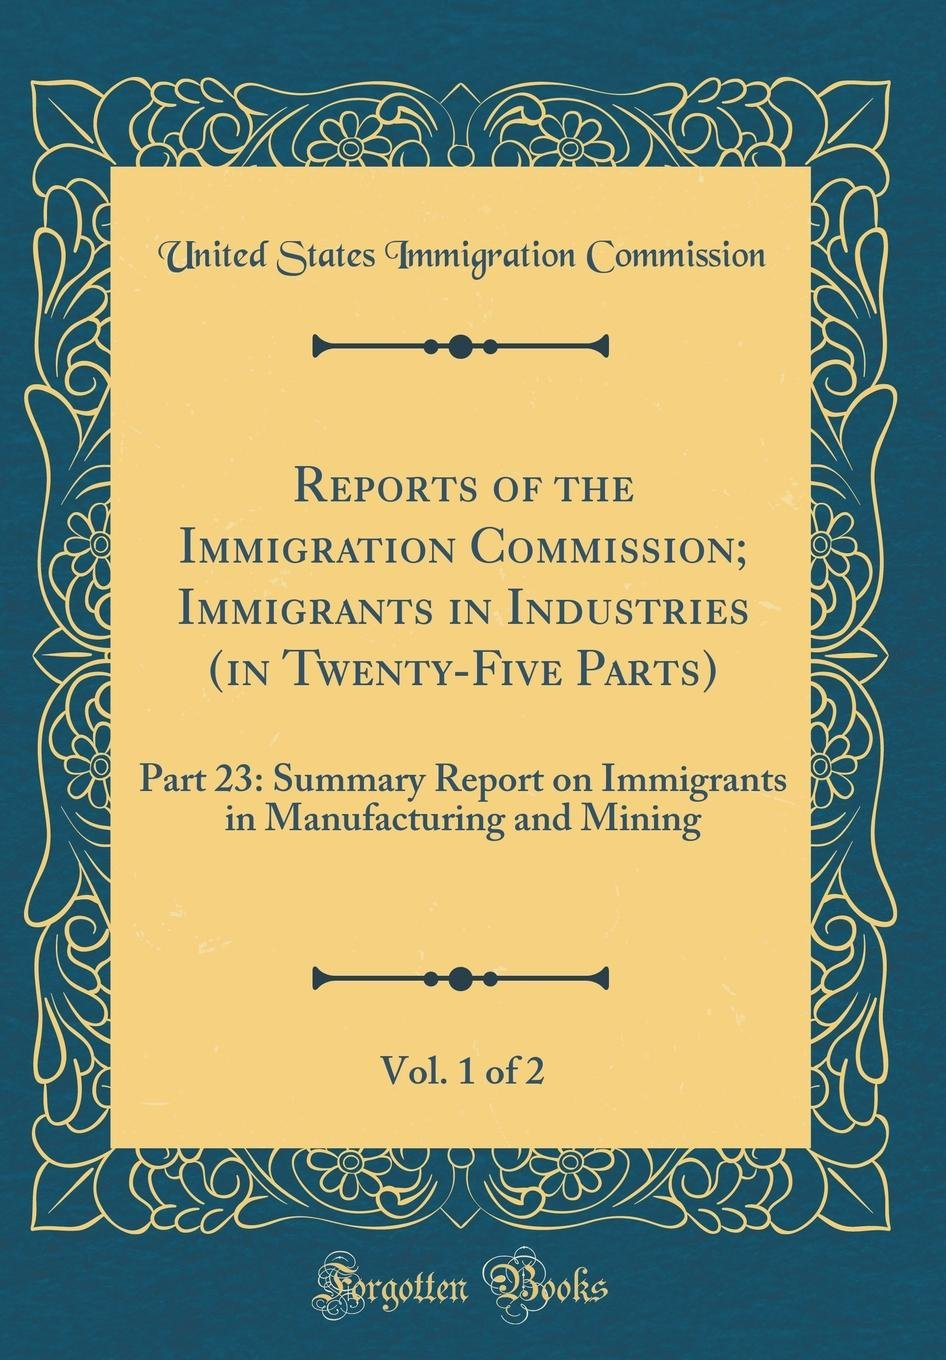 Download Reports of the Immigration Commission; Immigrants in Industries (in Twenty-Five Parts), Vol. 1 of 2: Part 23: Summary Report on Immigrants in Manufacturing and Mining (Classic Reprint) pdf